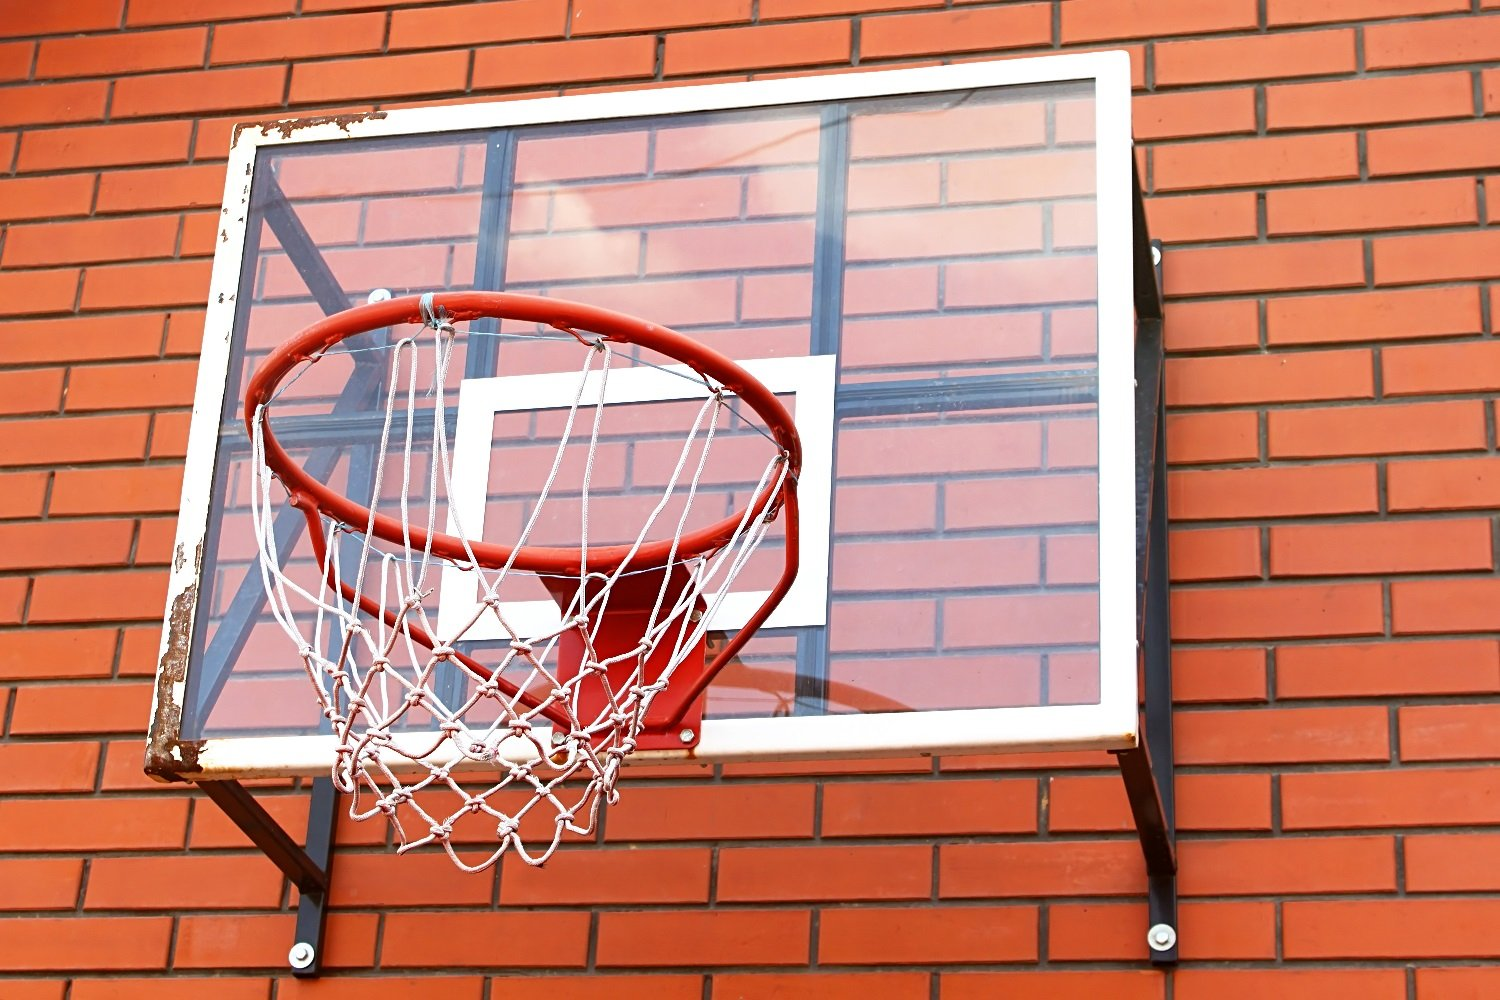 Gxing Wall Mounted Goal Hoop Rim Net,Hanging Basketball Hoop Backboard Foldable Set with Net Screw for Outdoors Indoor Sports,Durable Heavy Duty Steel Frame,Parent-child Adult Children Toys